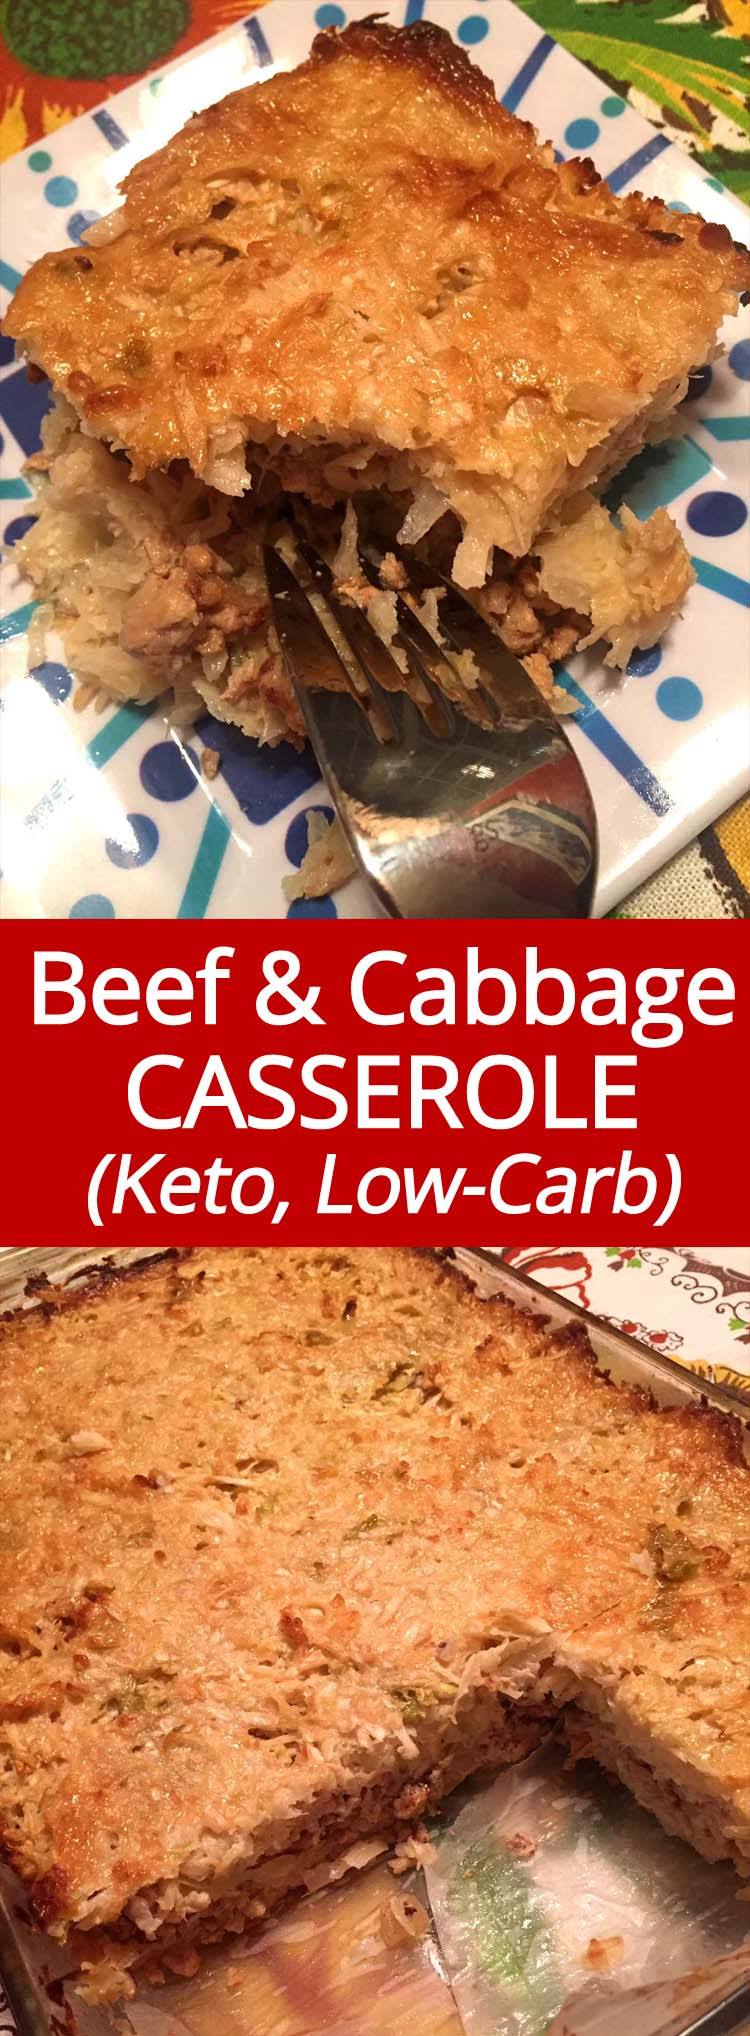 This ground beef and cabbage casserole is my new favorite keto dinner! So easy to make and so delicious!